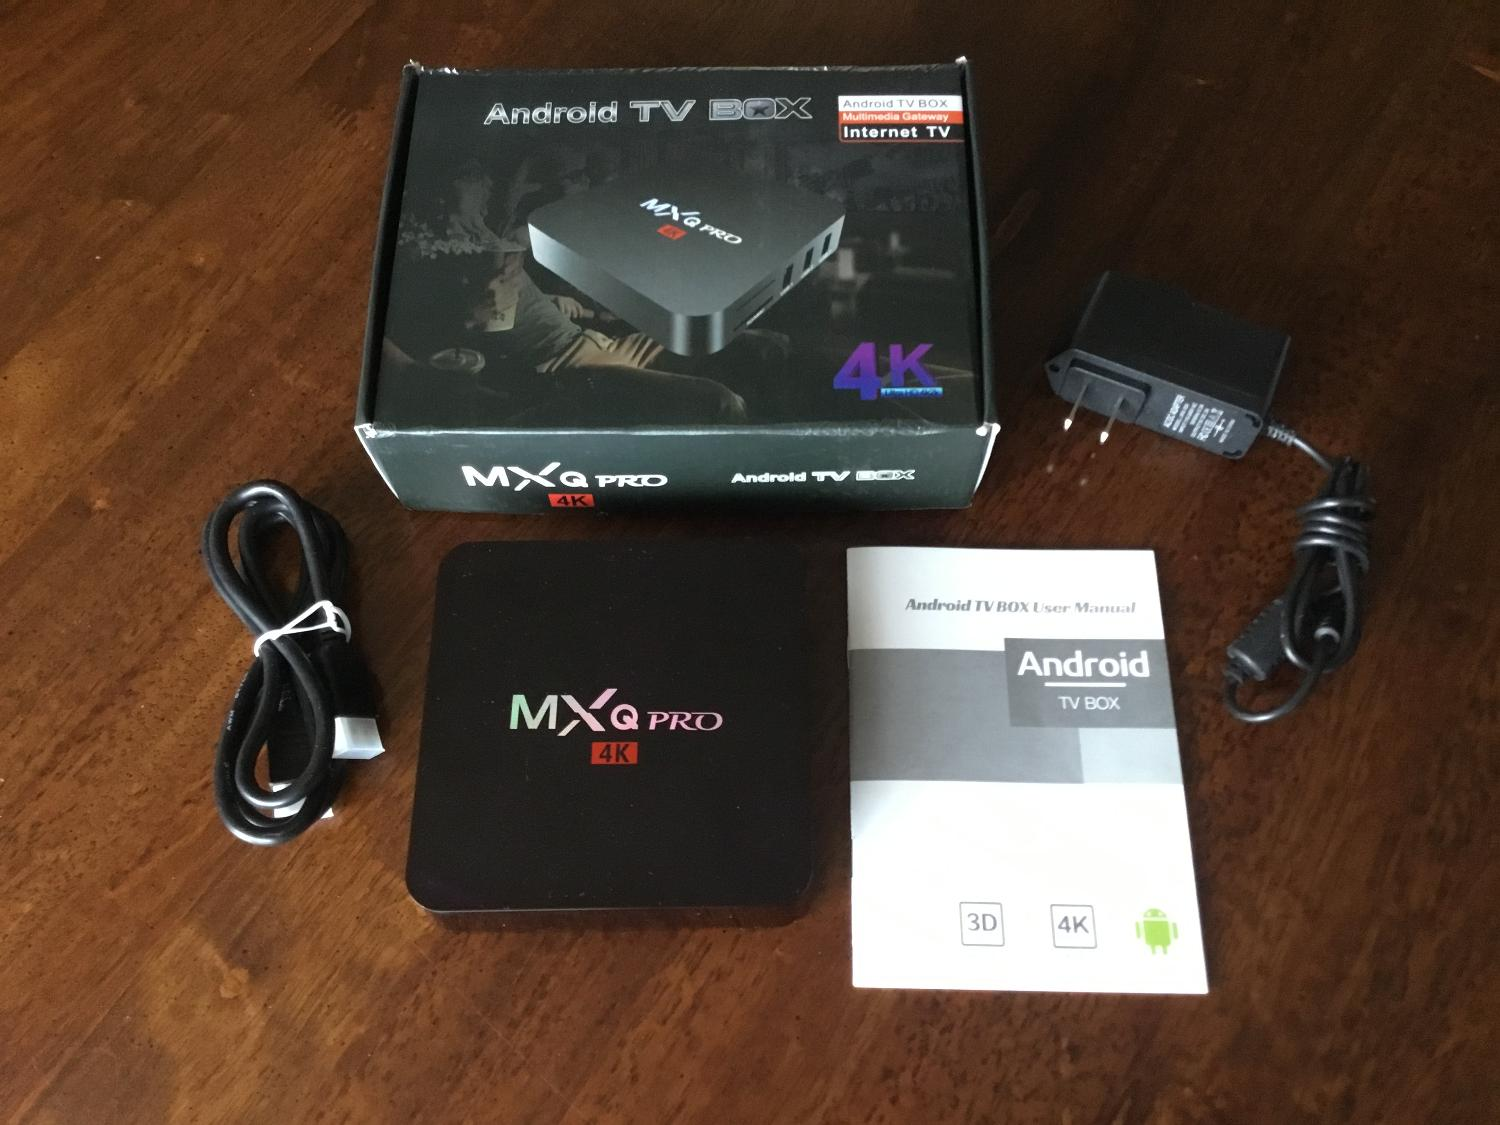 Android Tv Box multimedia gateway INTERNET TV MXQPRO 4K incl remote,power  cord,hd cable instructions